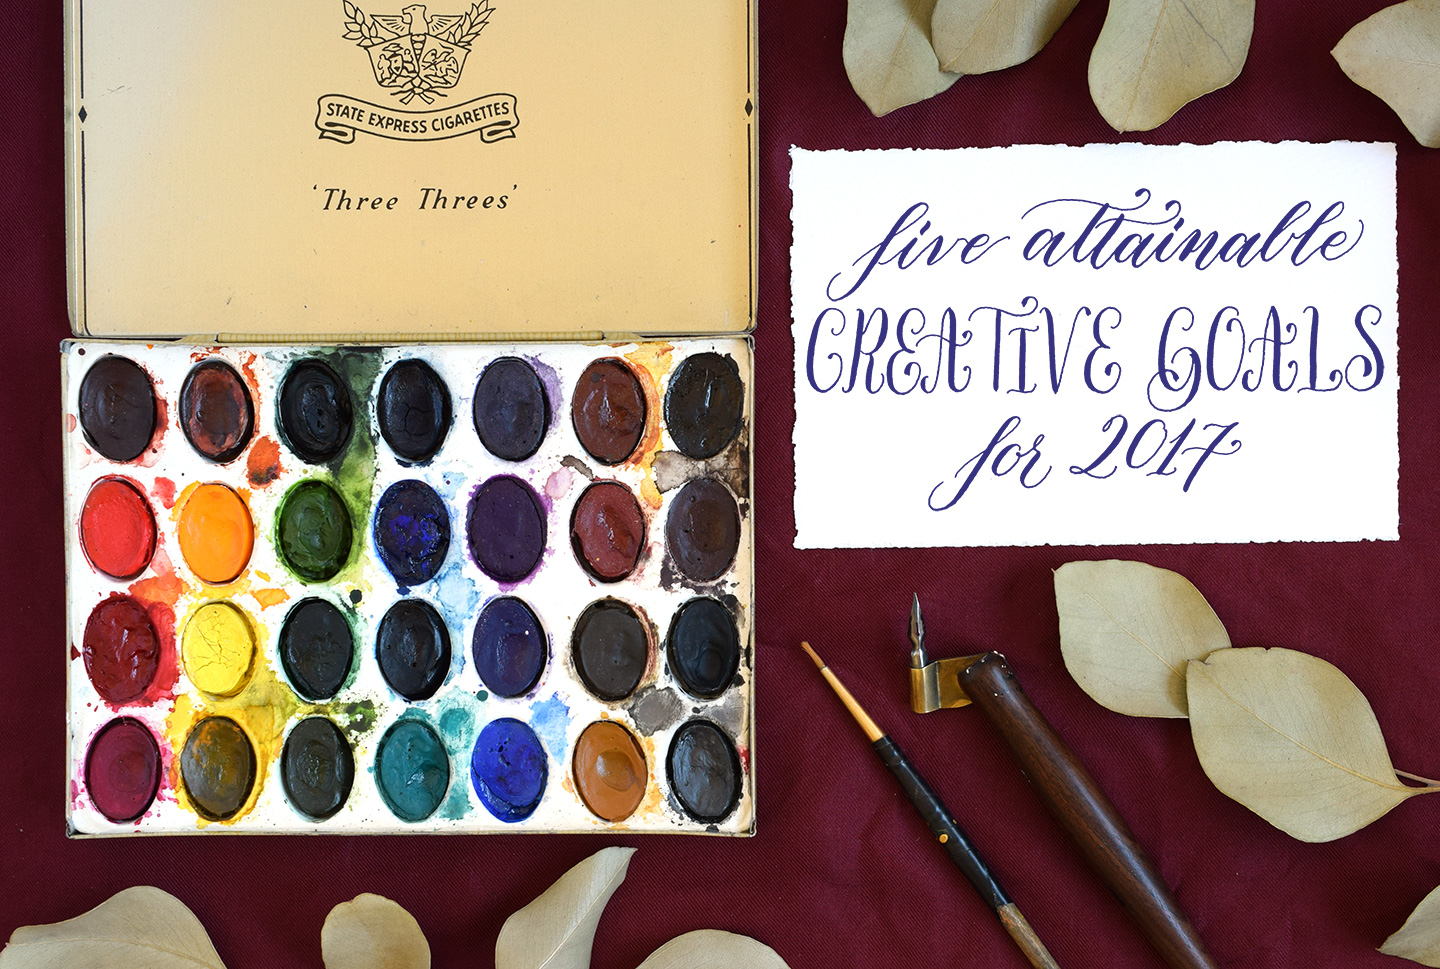 Five Attainable Creative Goals for 2017   The Postman's Knock